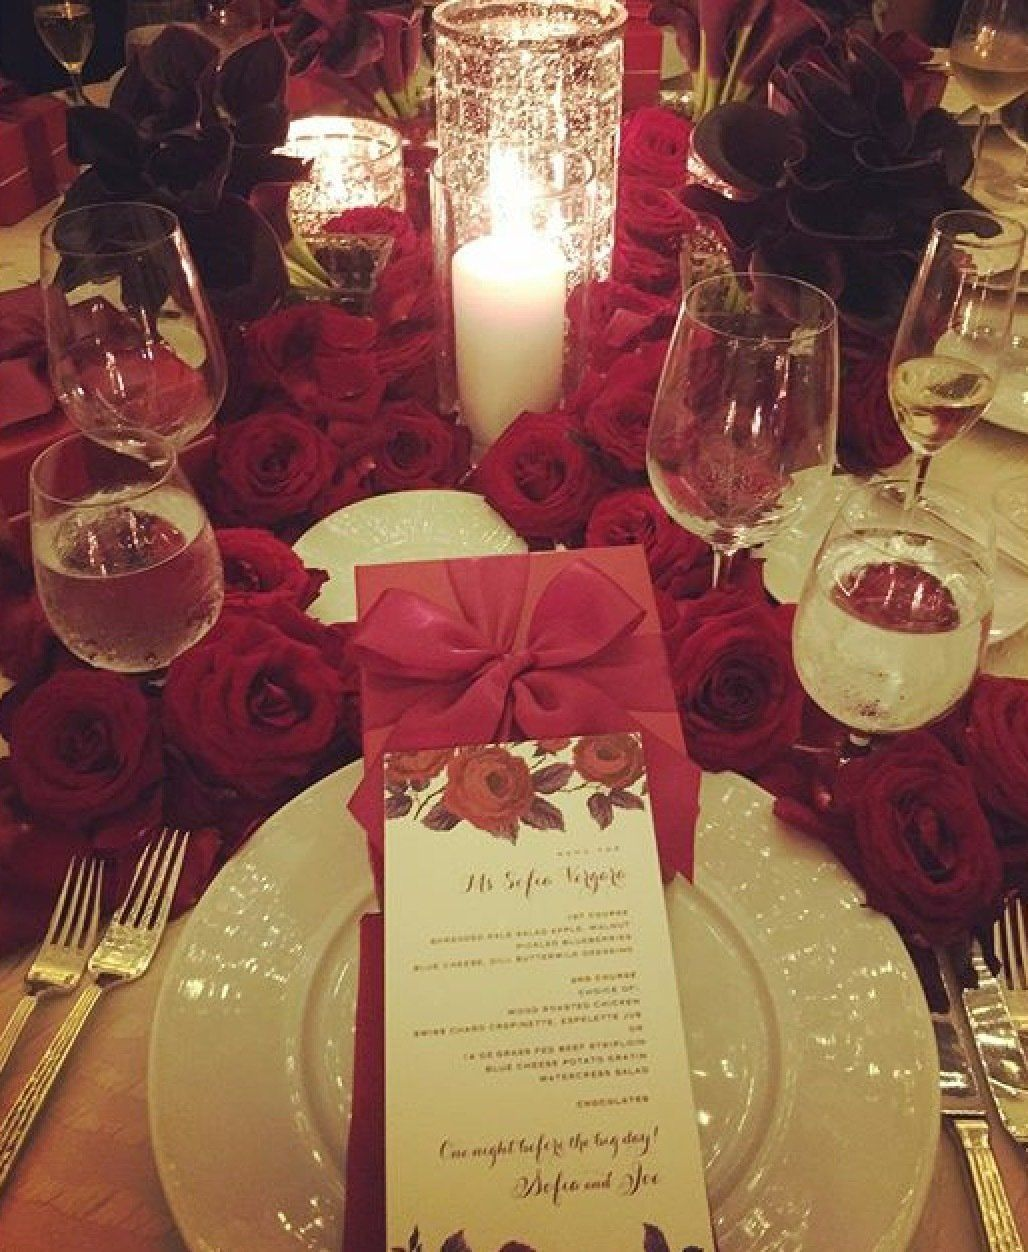 Instead of a rehearsal dinner, there was a dinner hosted by the bride. The theme was red and incredible crimson roses adorned the room.